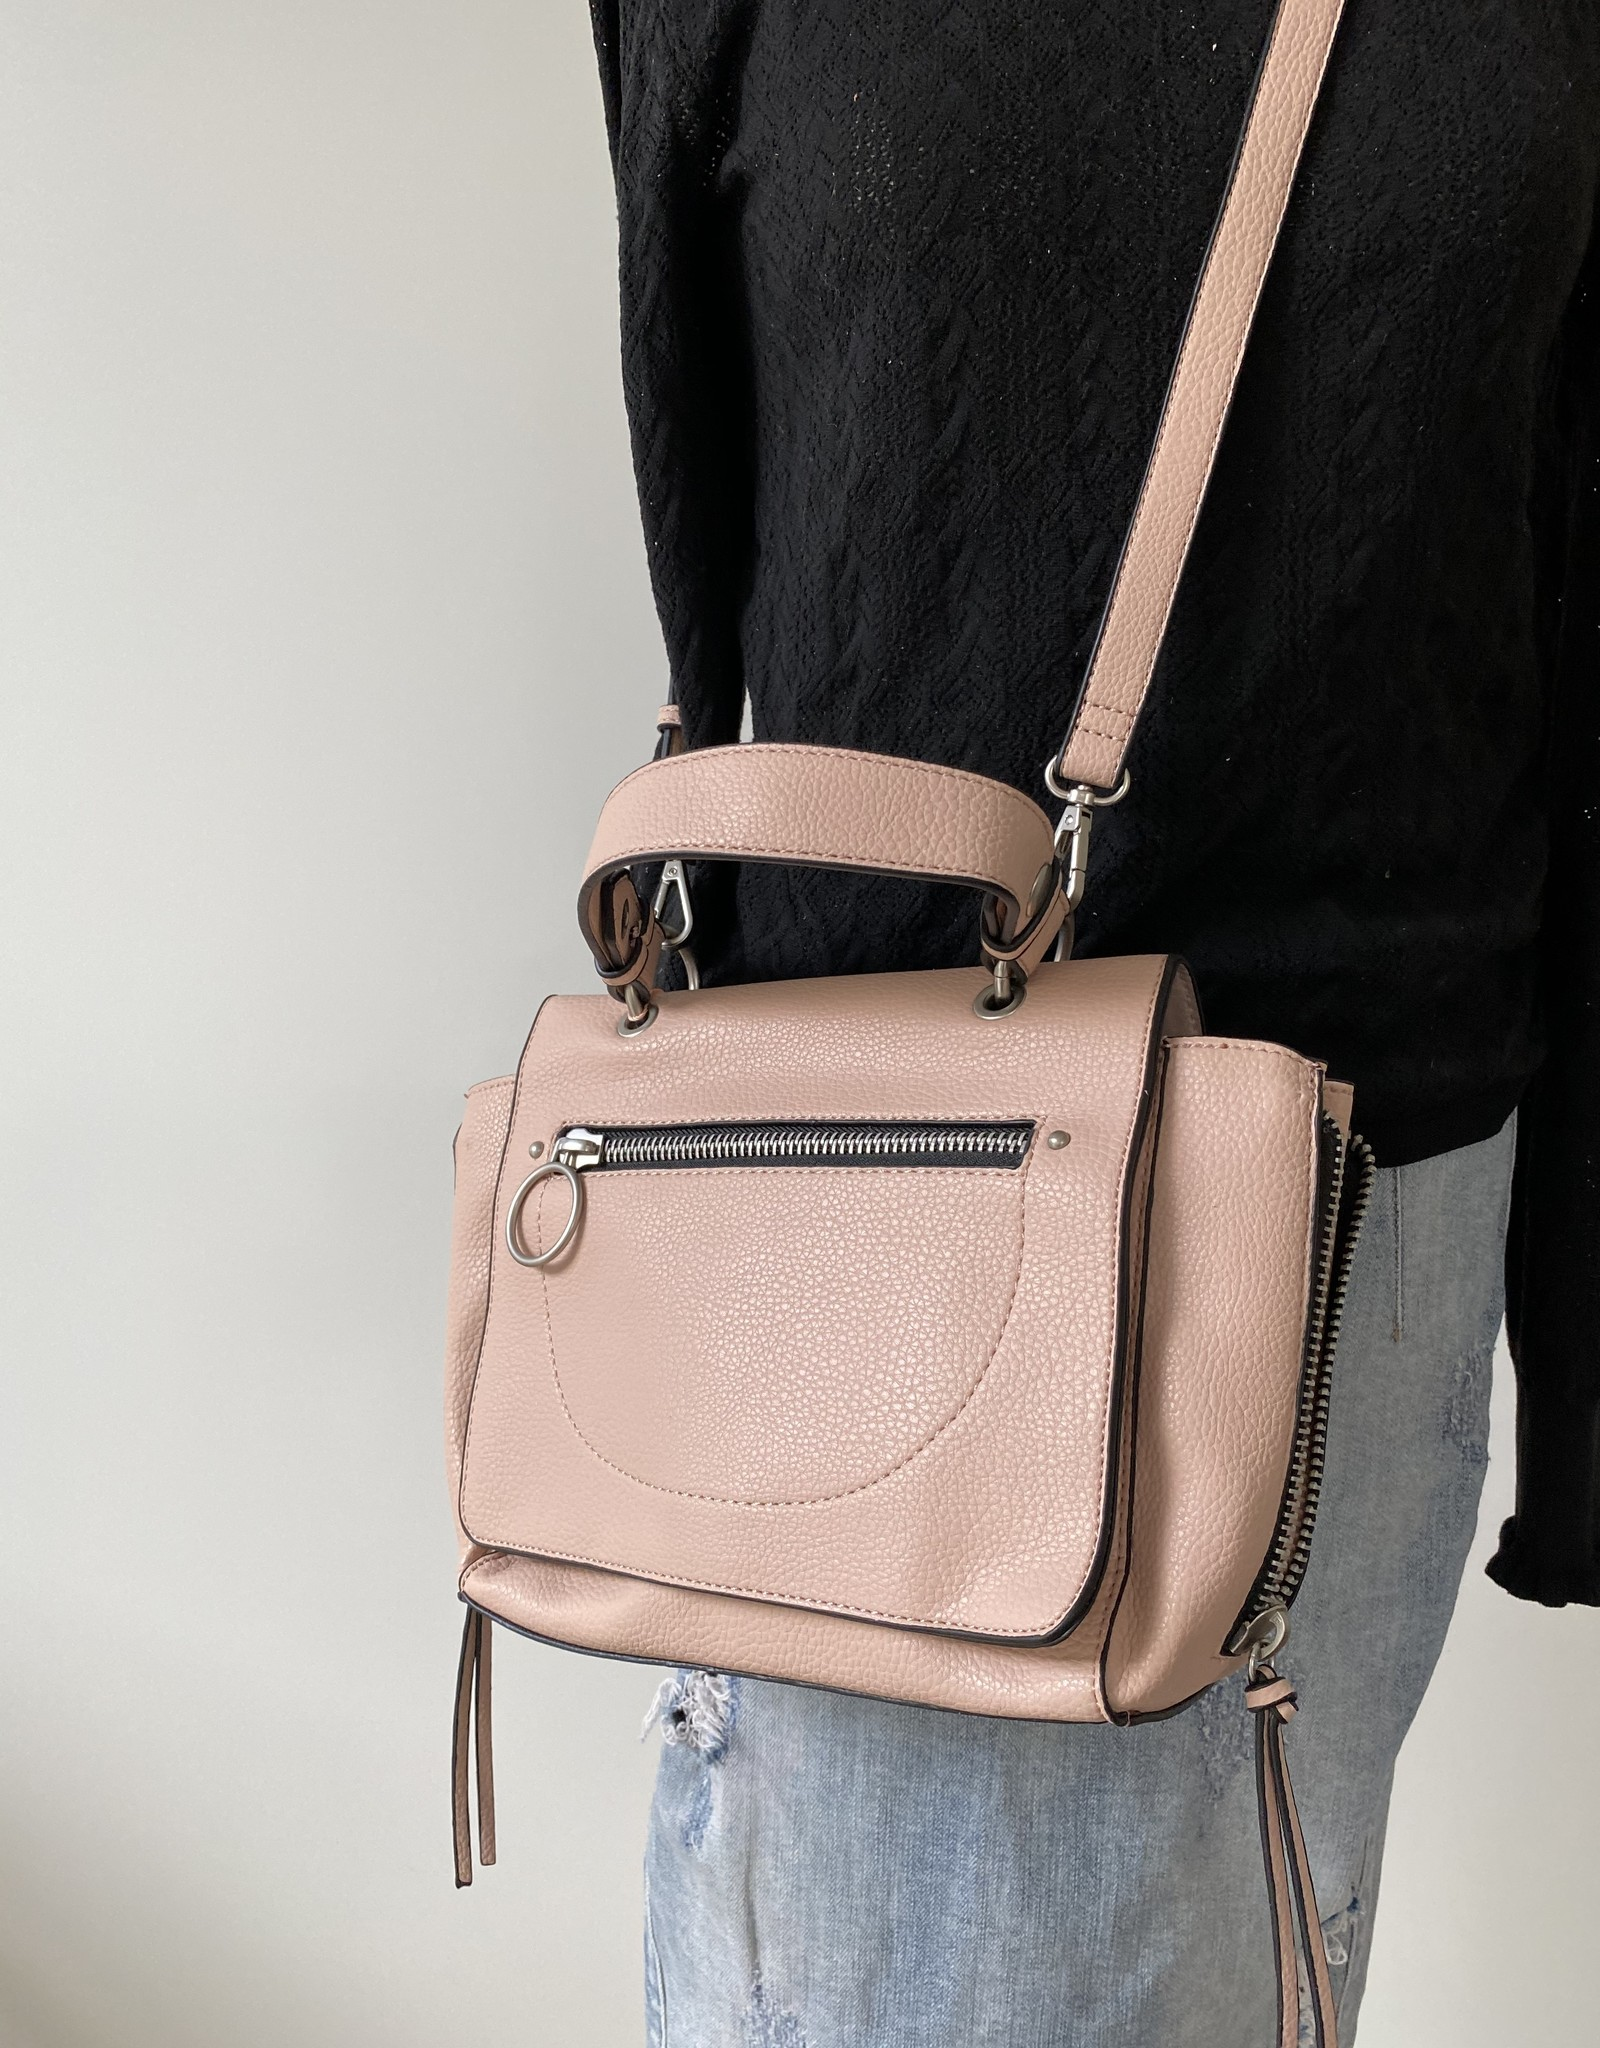 Little handbag in artificial leather